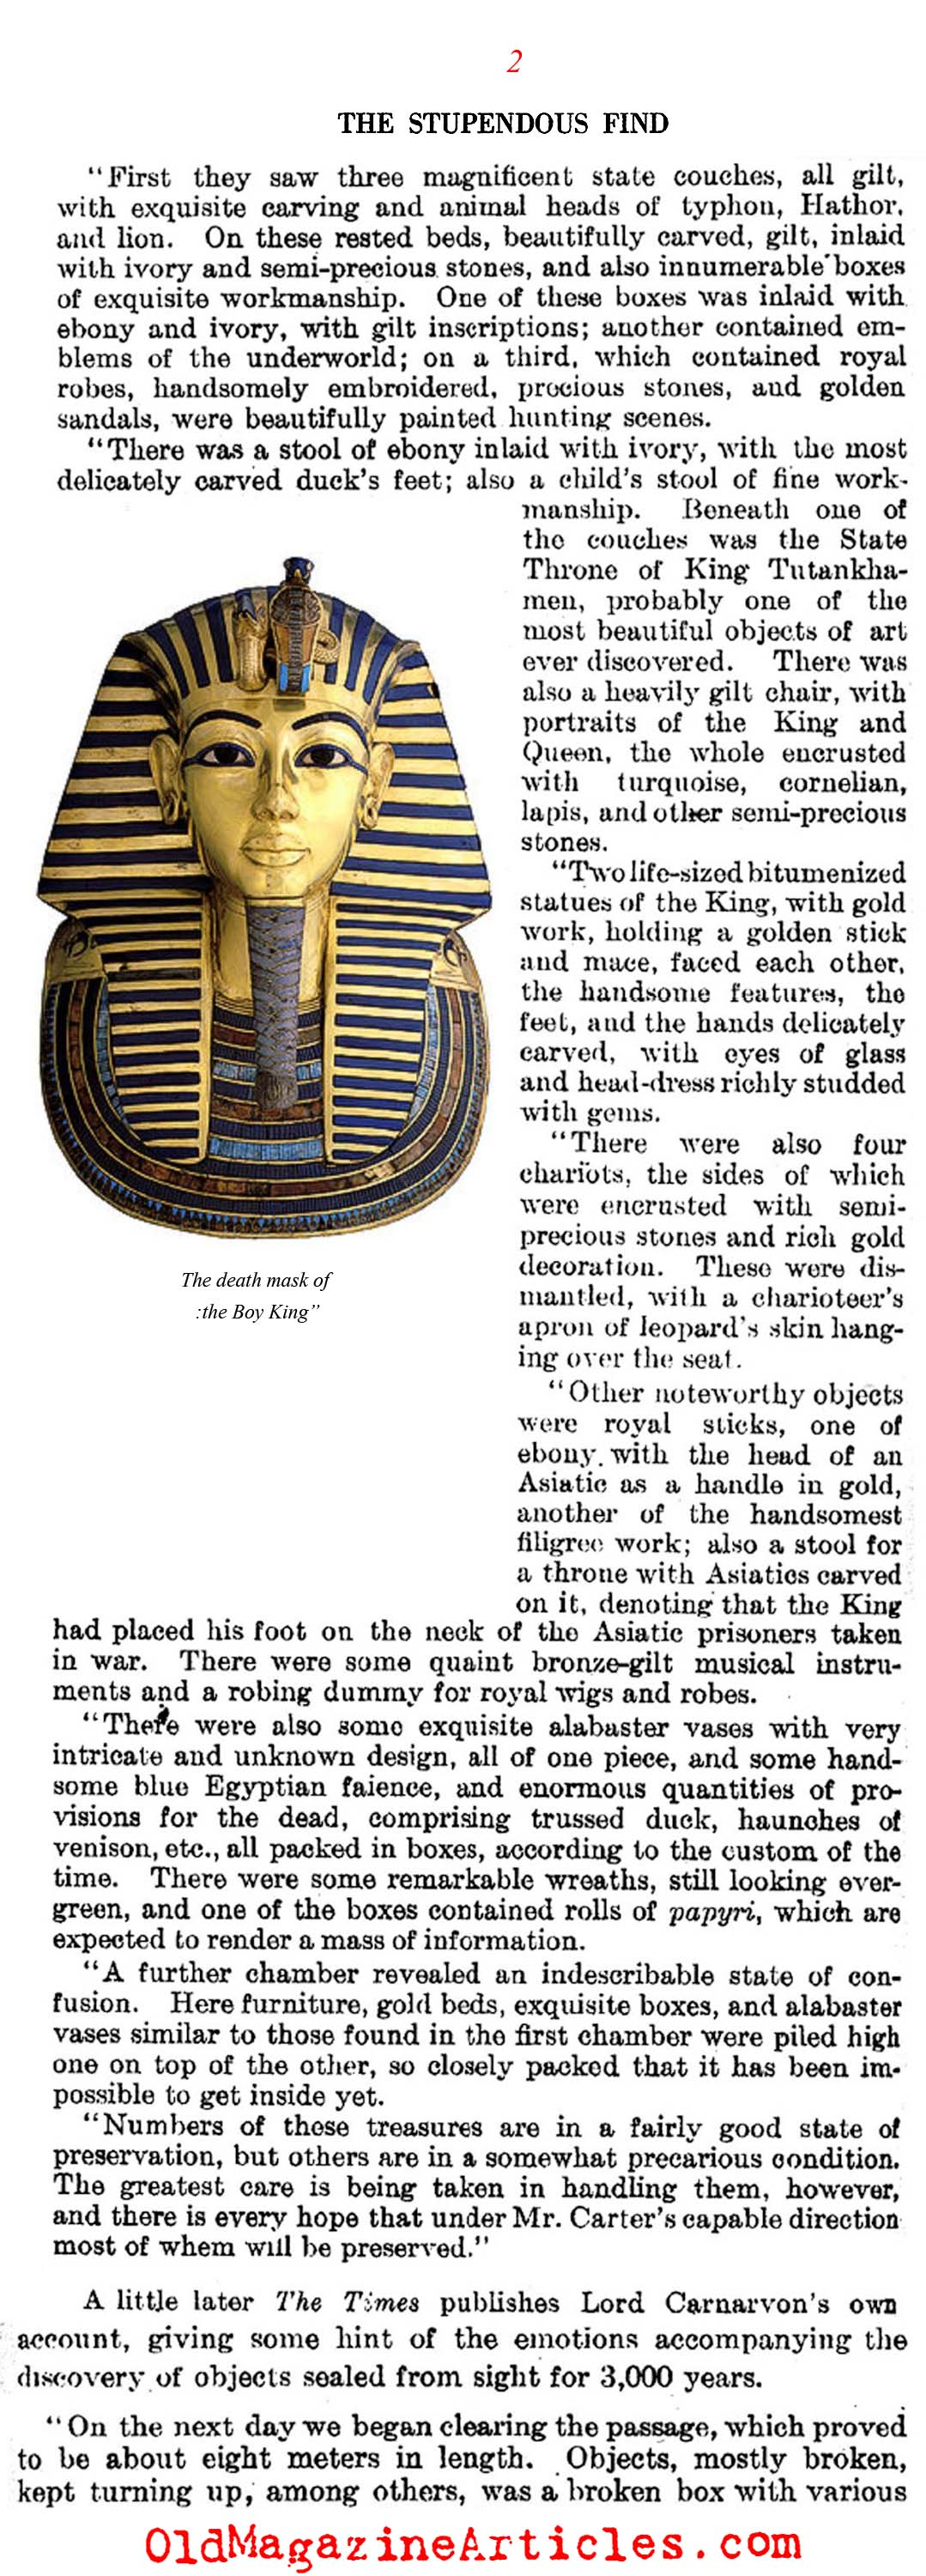 Discovered: The Tomb of King Tutankhamun (Literary Digest, 1923)